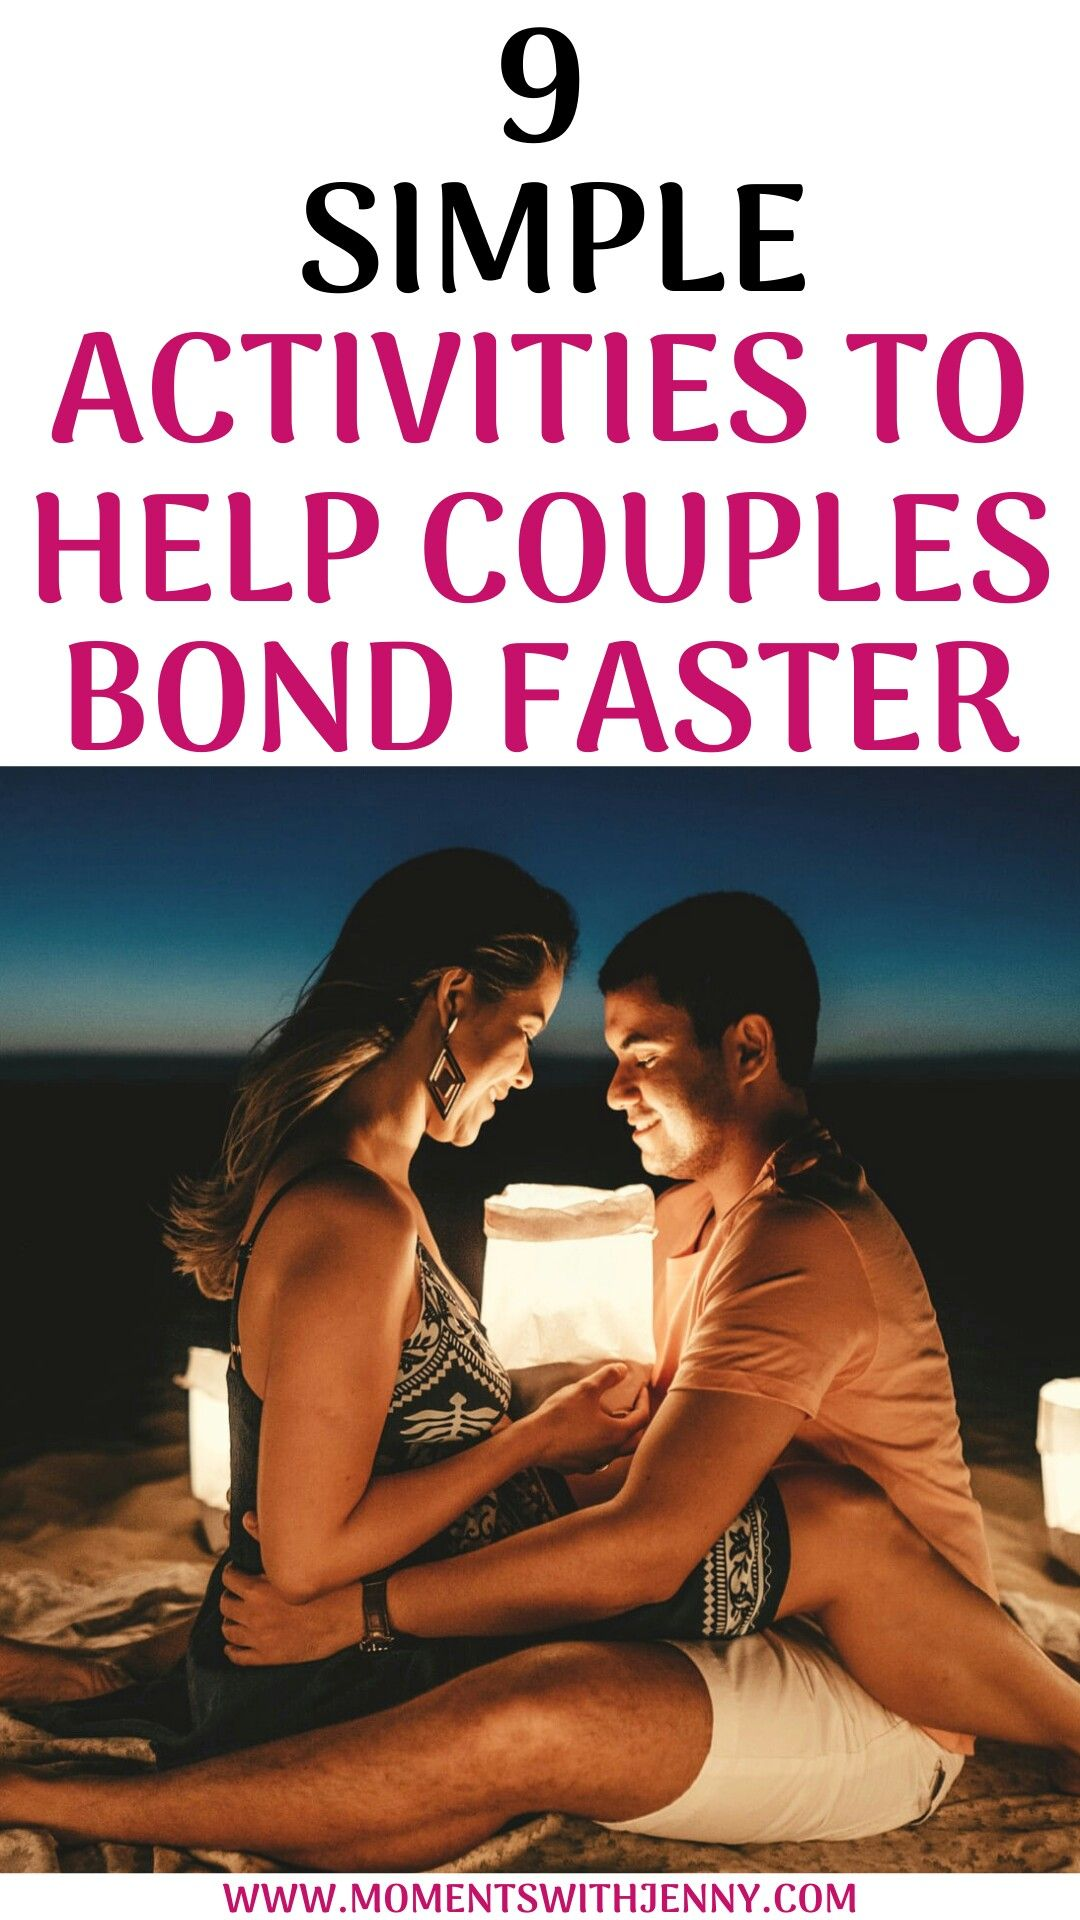 9 Simple Activities to Help Couples Bond Faster